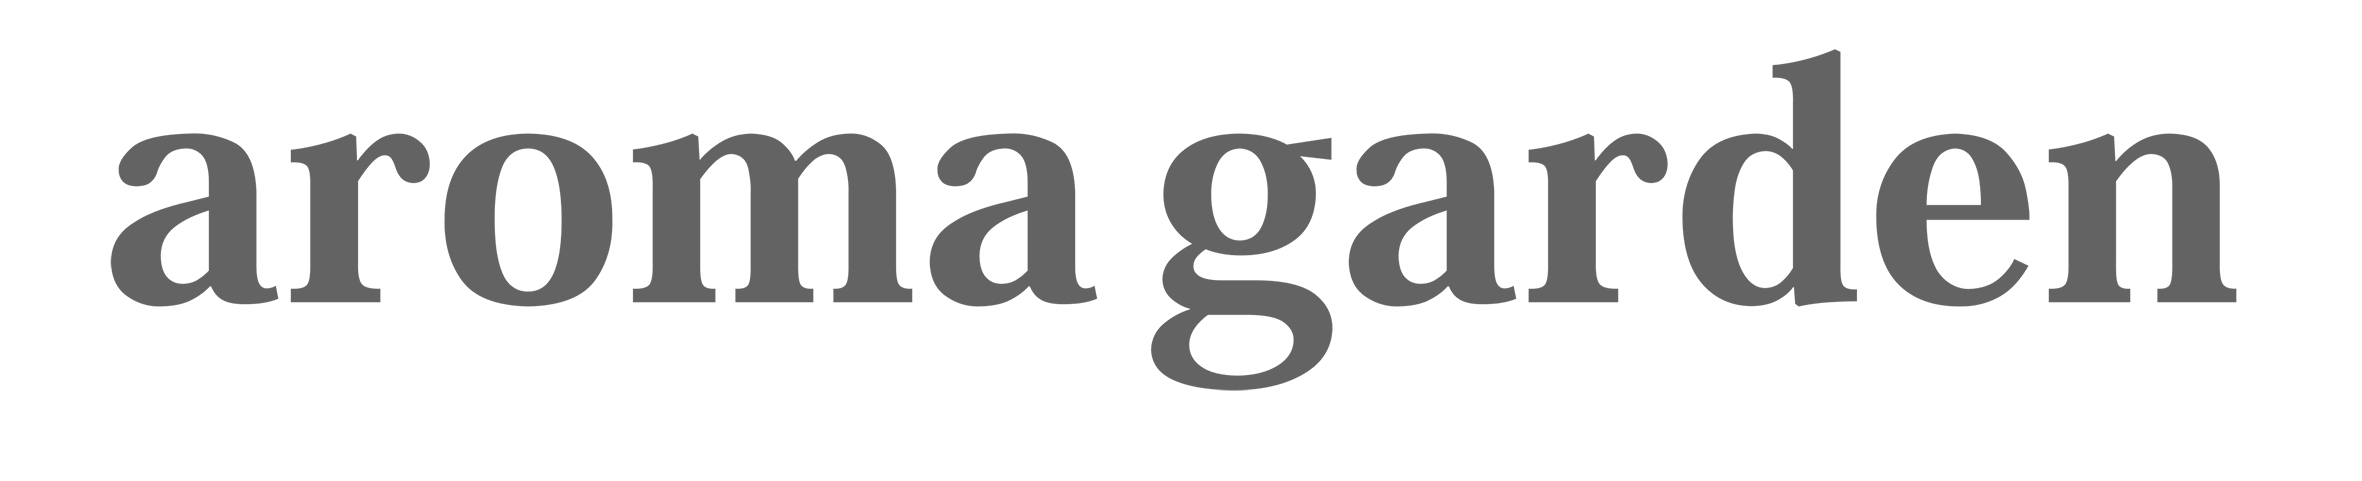 Aromagarden_Logo-High-Res